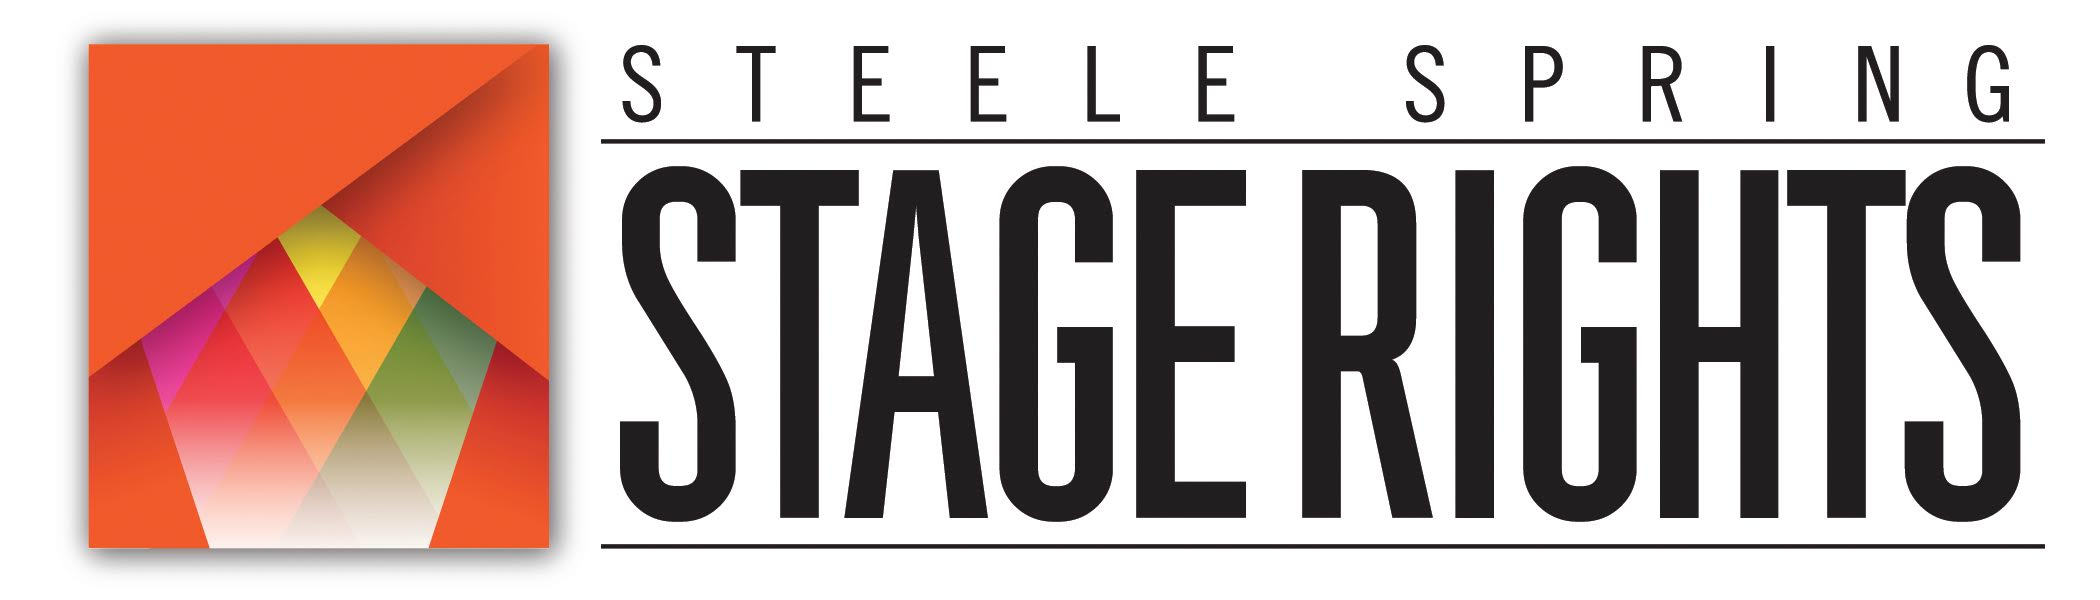 Steel Spring Stage Rights logo